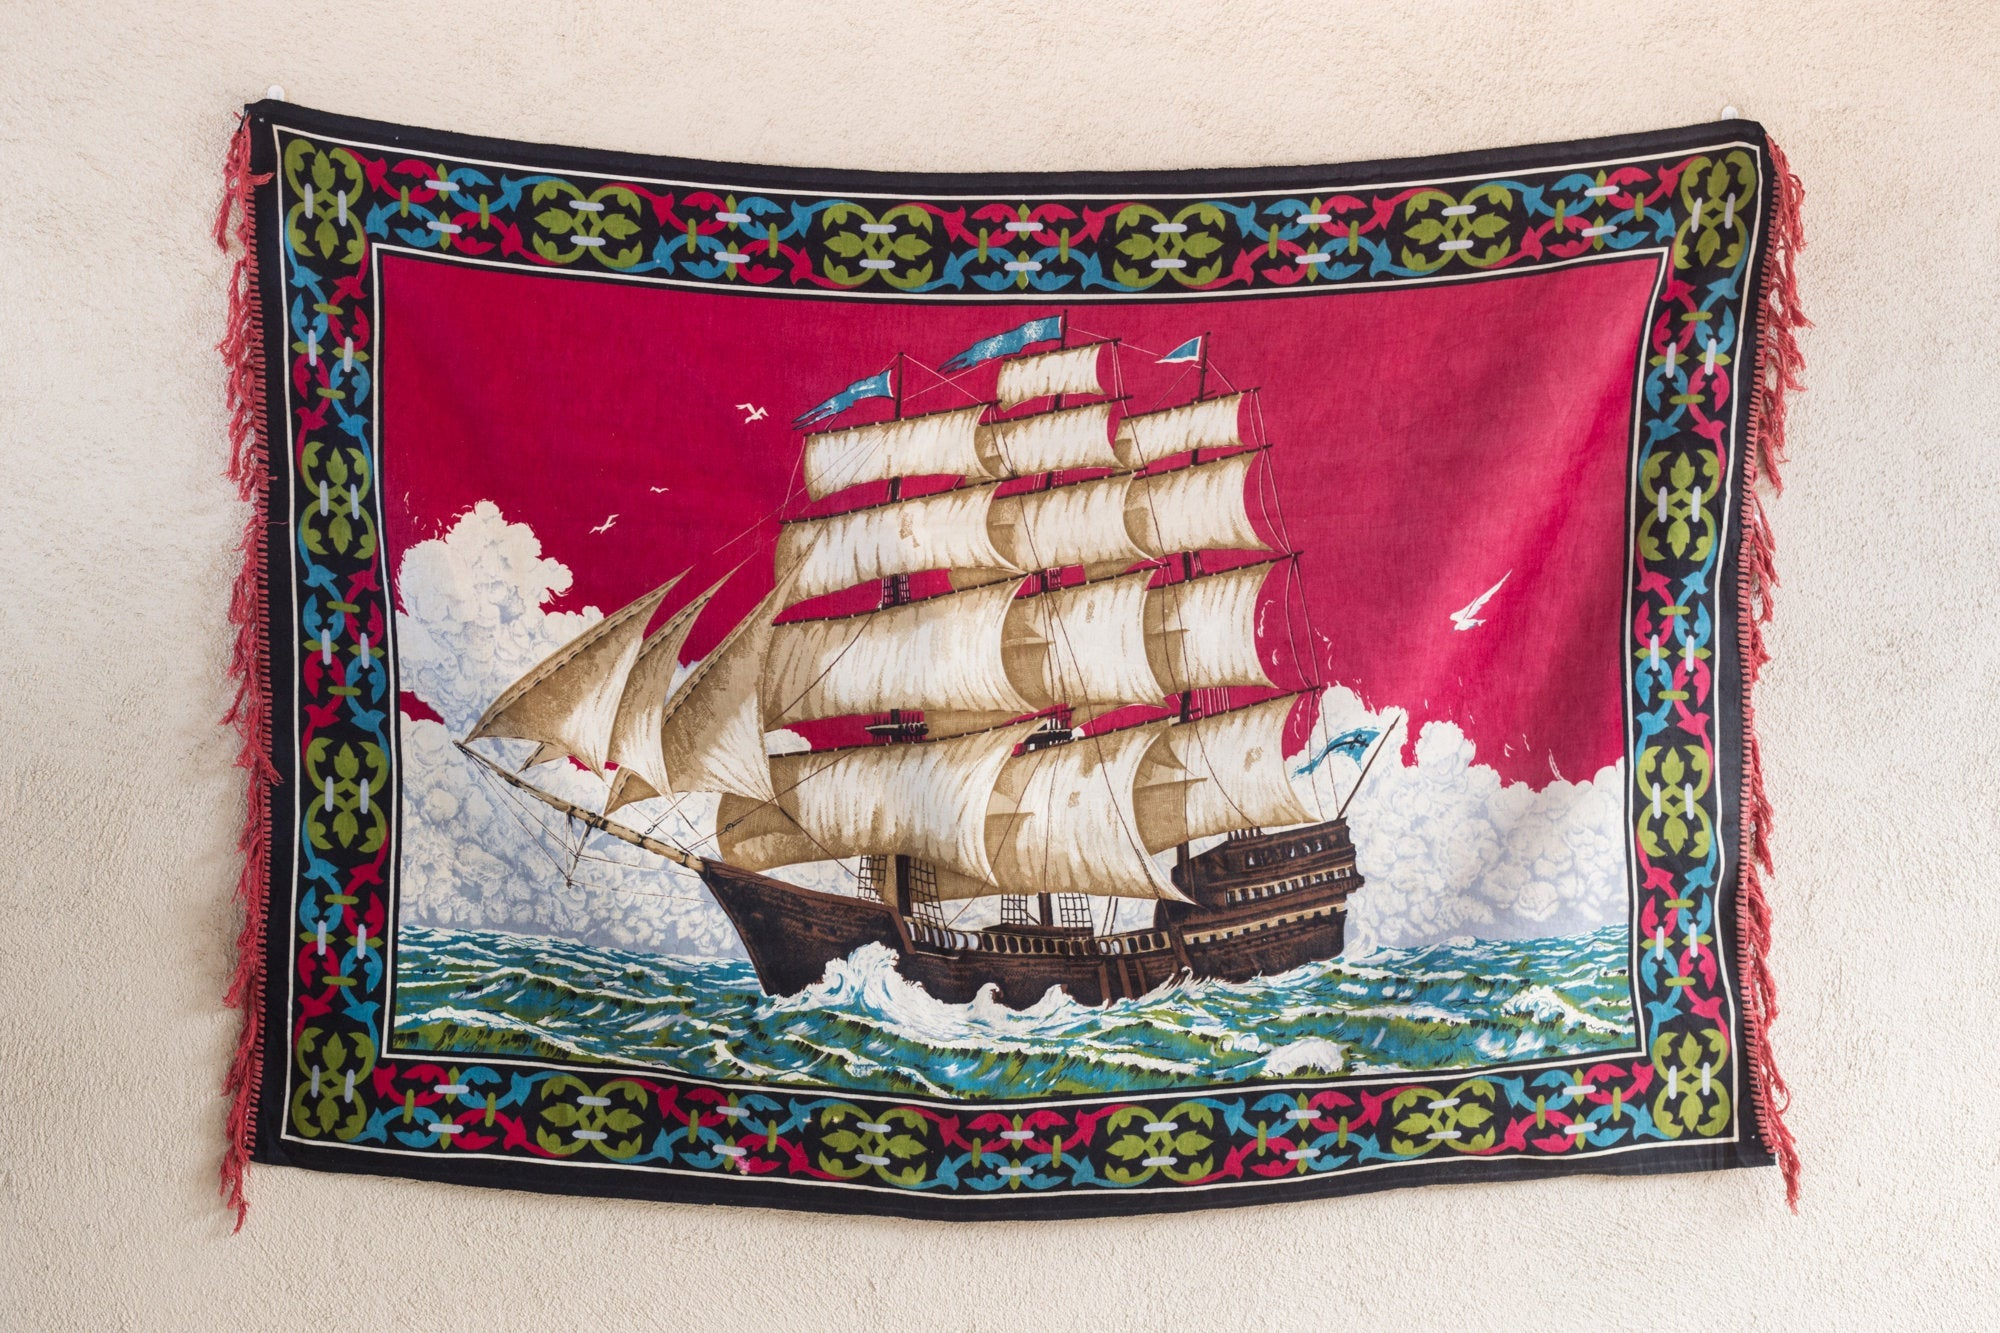 Vintage 70s Sailing Ship Tapestry - 3'x5'